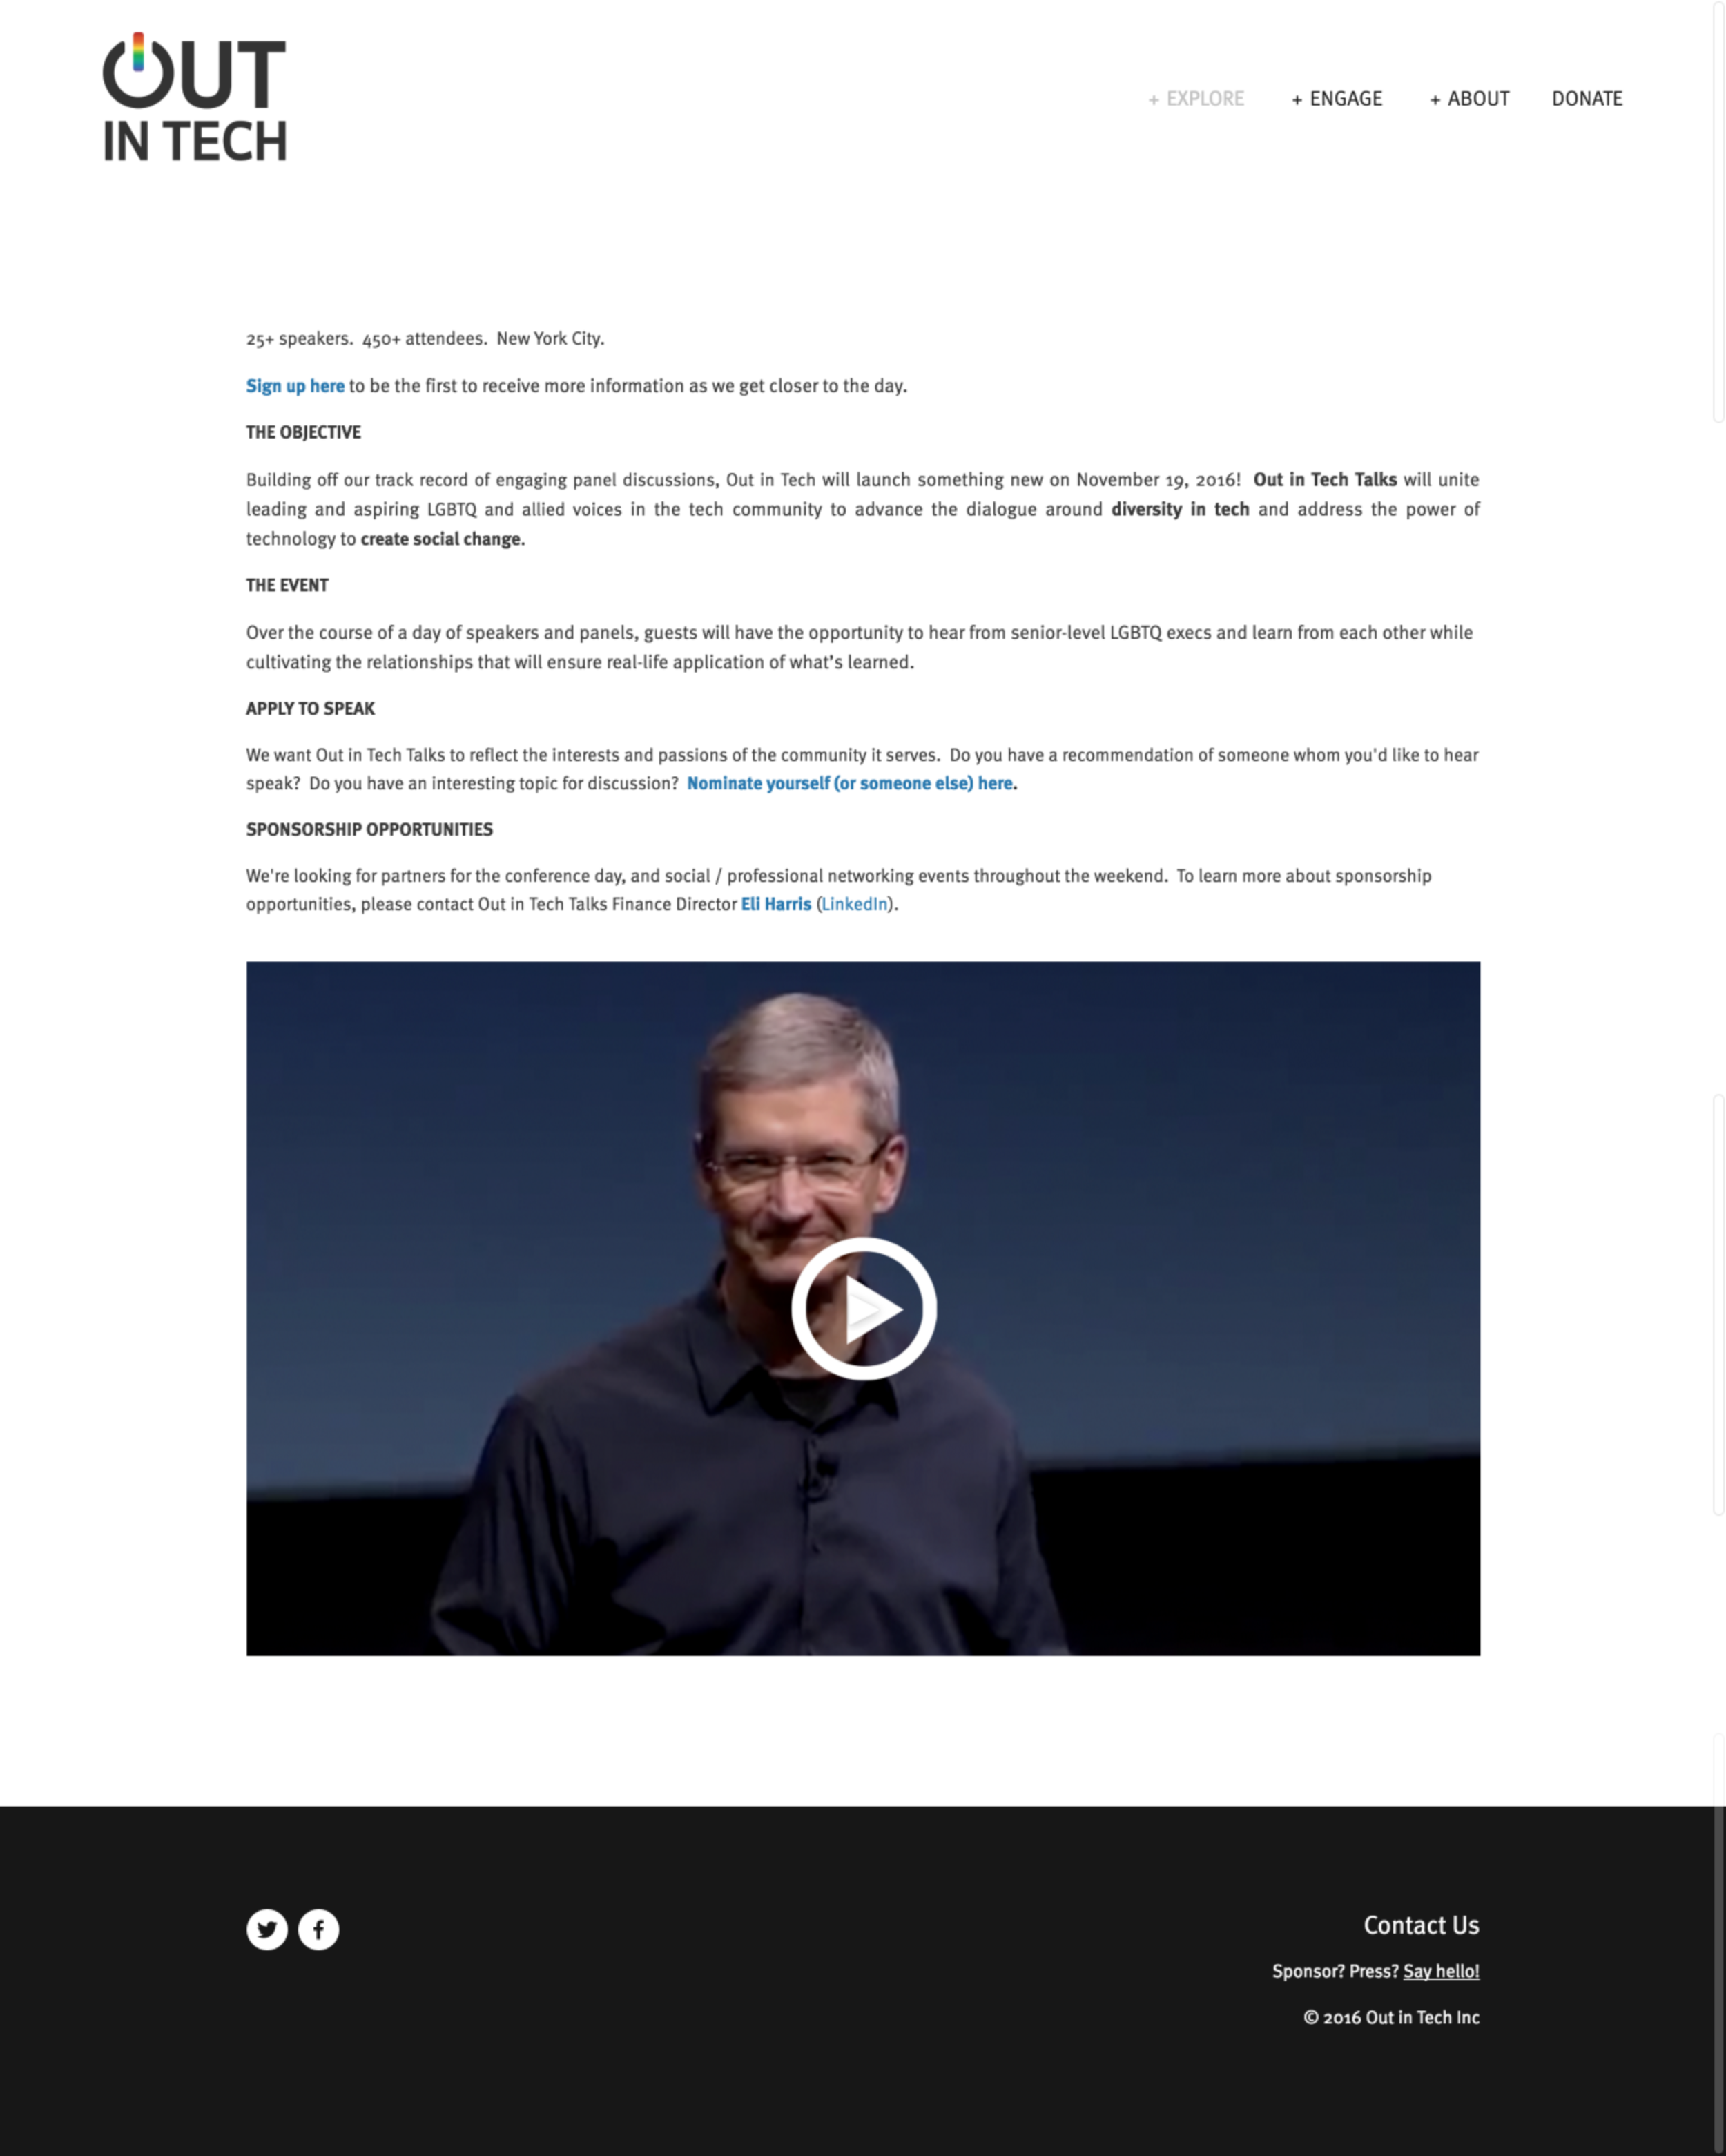 Previous Out in Tech Talks landing page